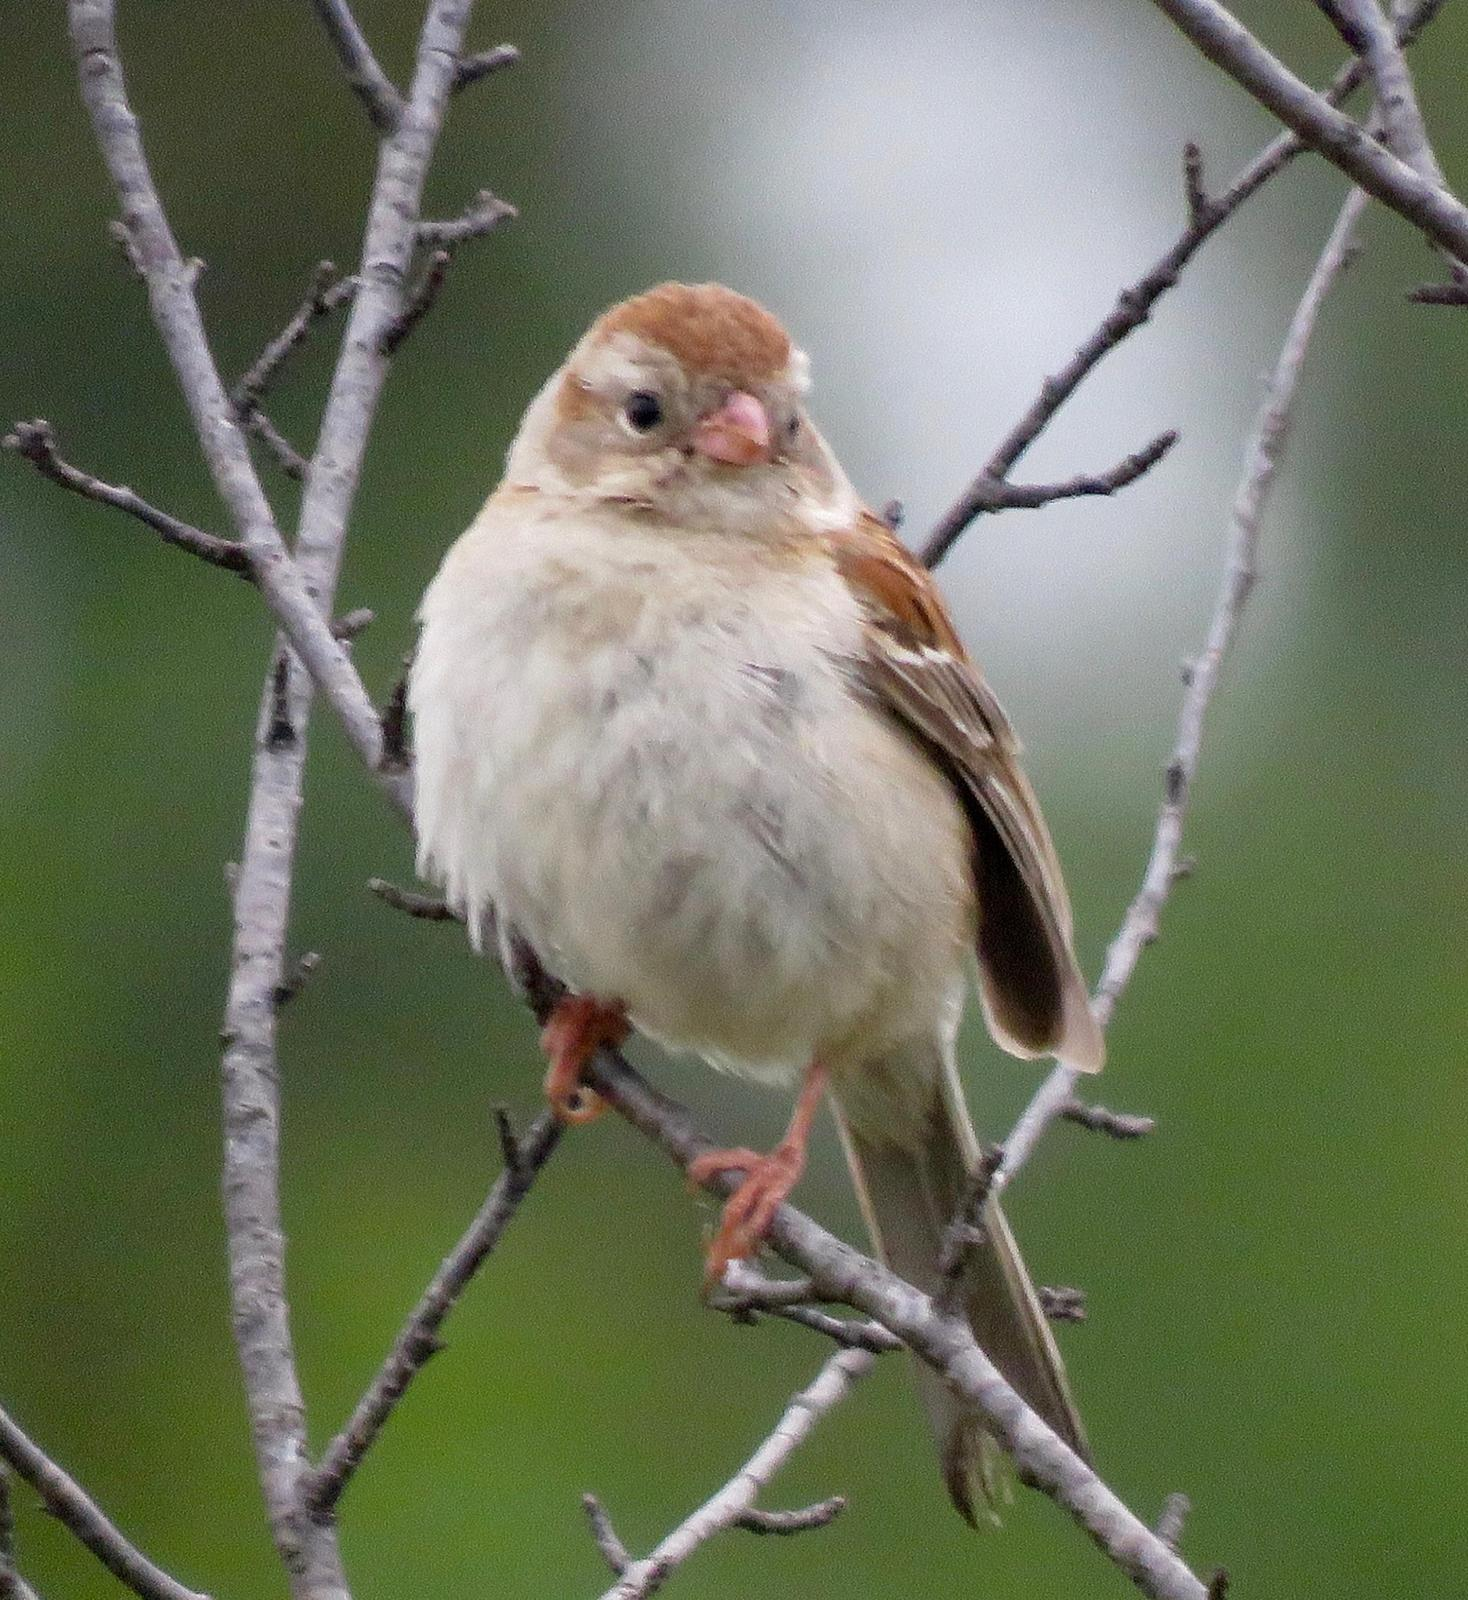 Field Sparrow Photo by Don Glasco